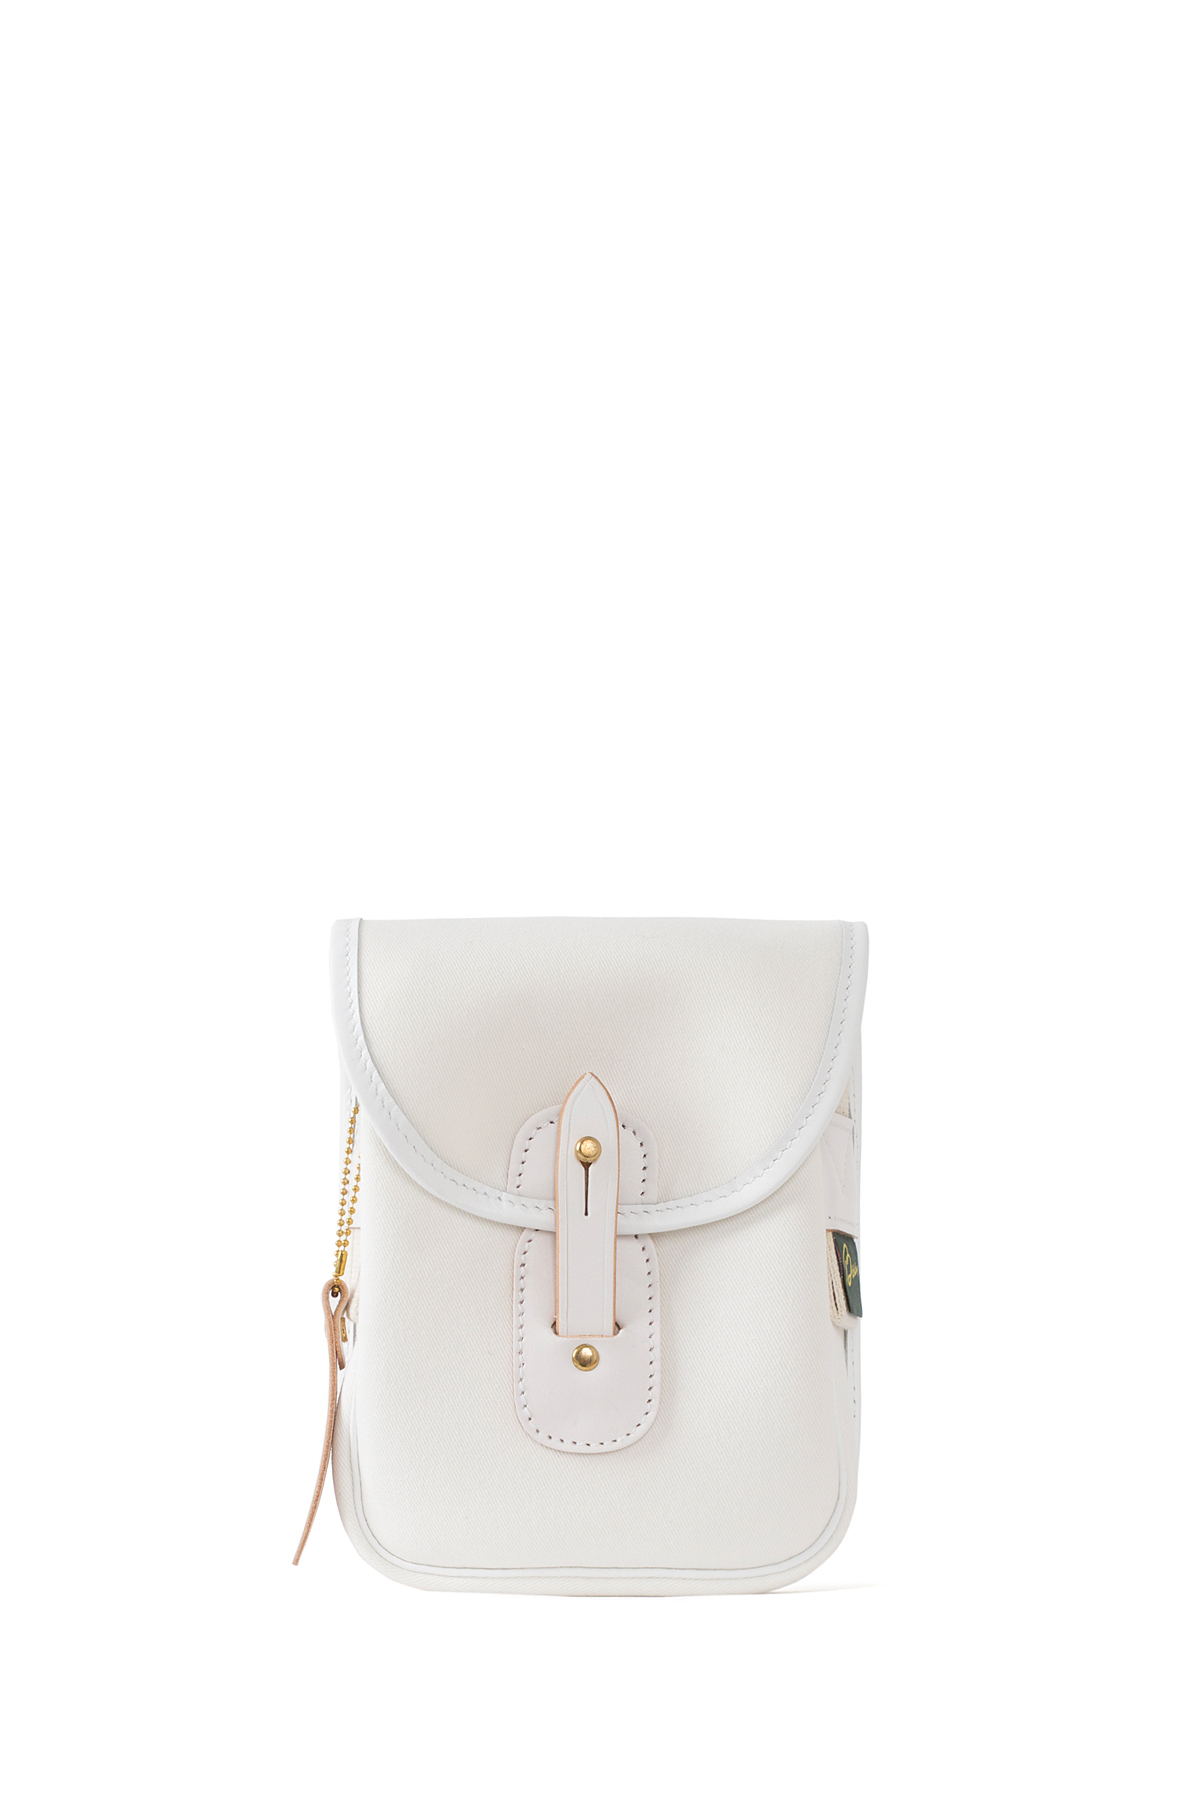 Brady Bags : KENT Shoulder Bag (White)